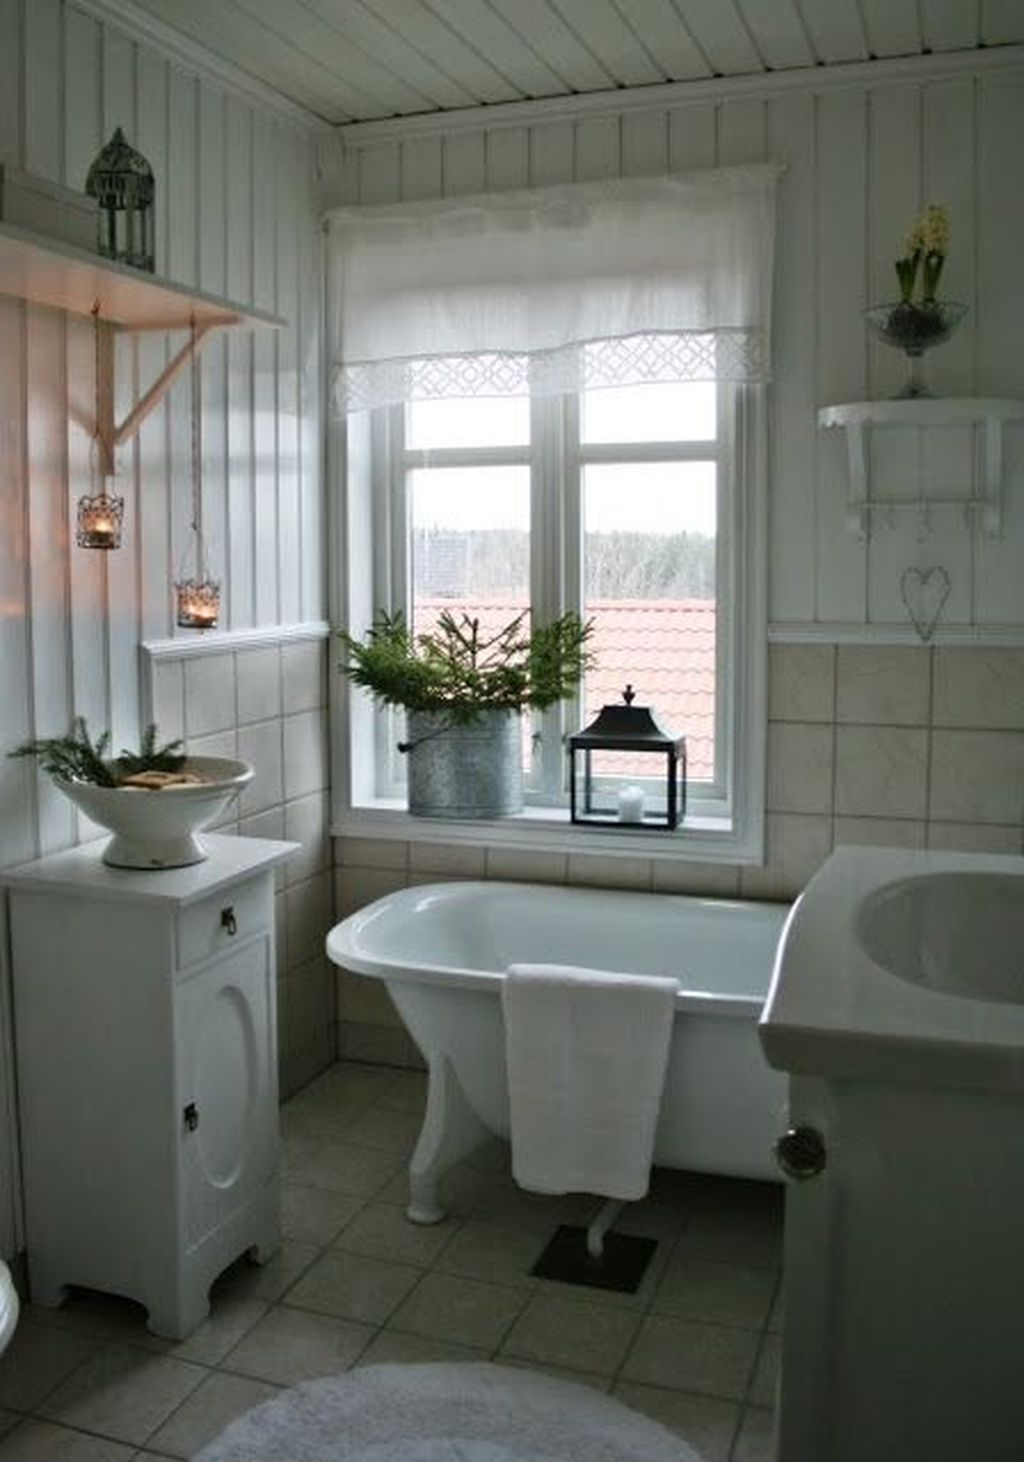 The Best Winter Bathroom Decor Ideas 15